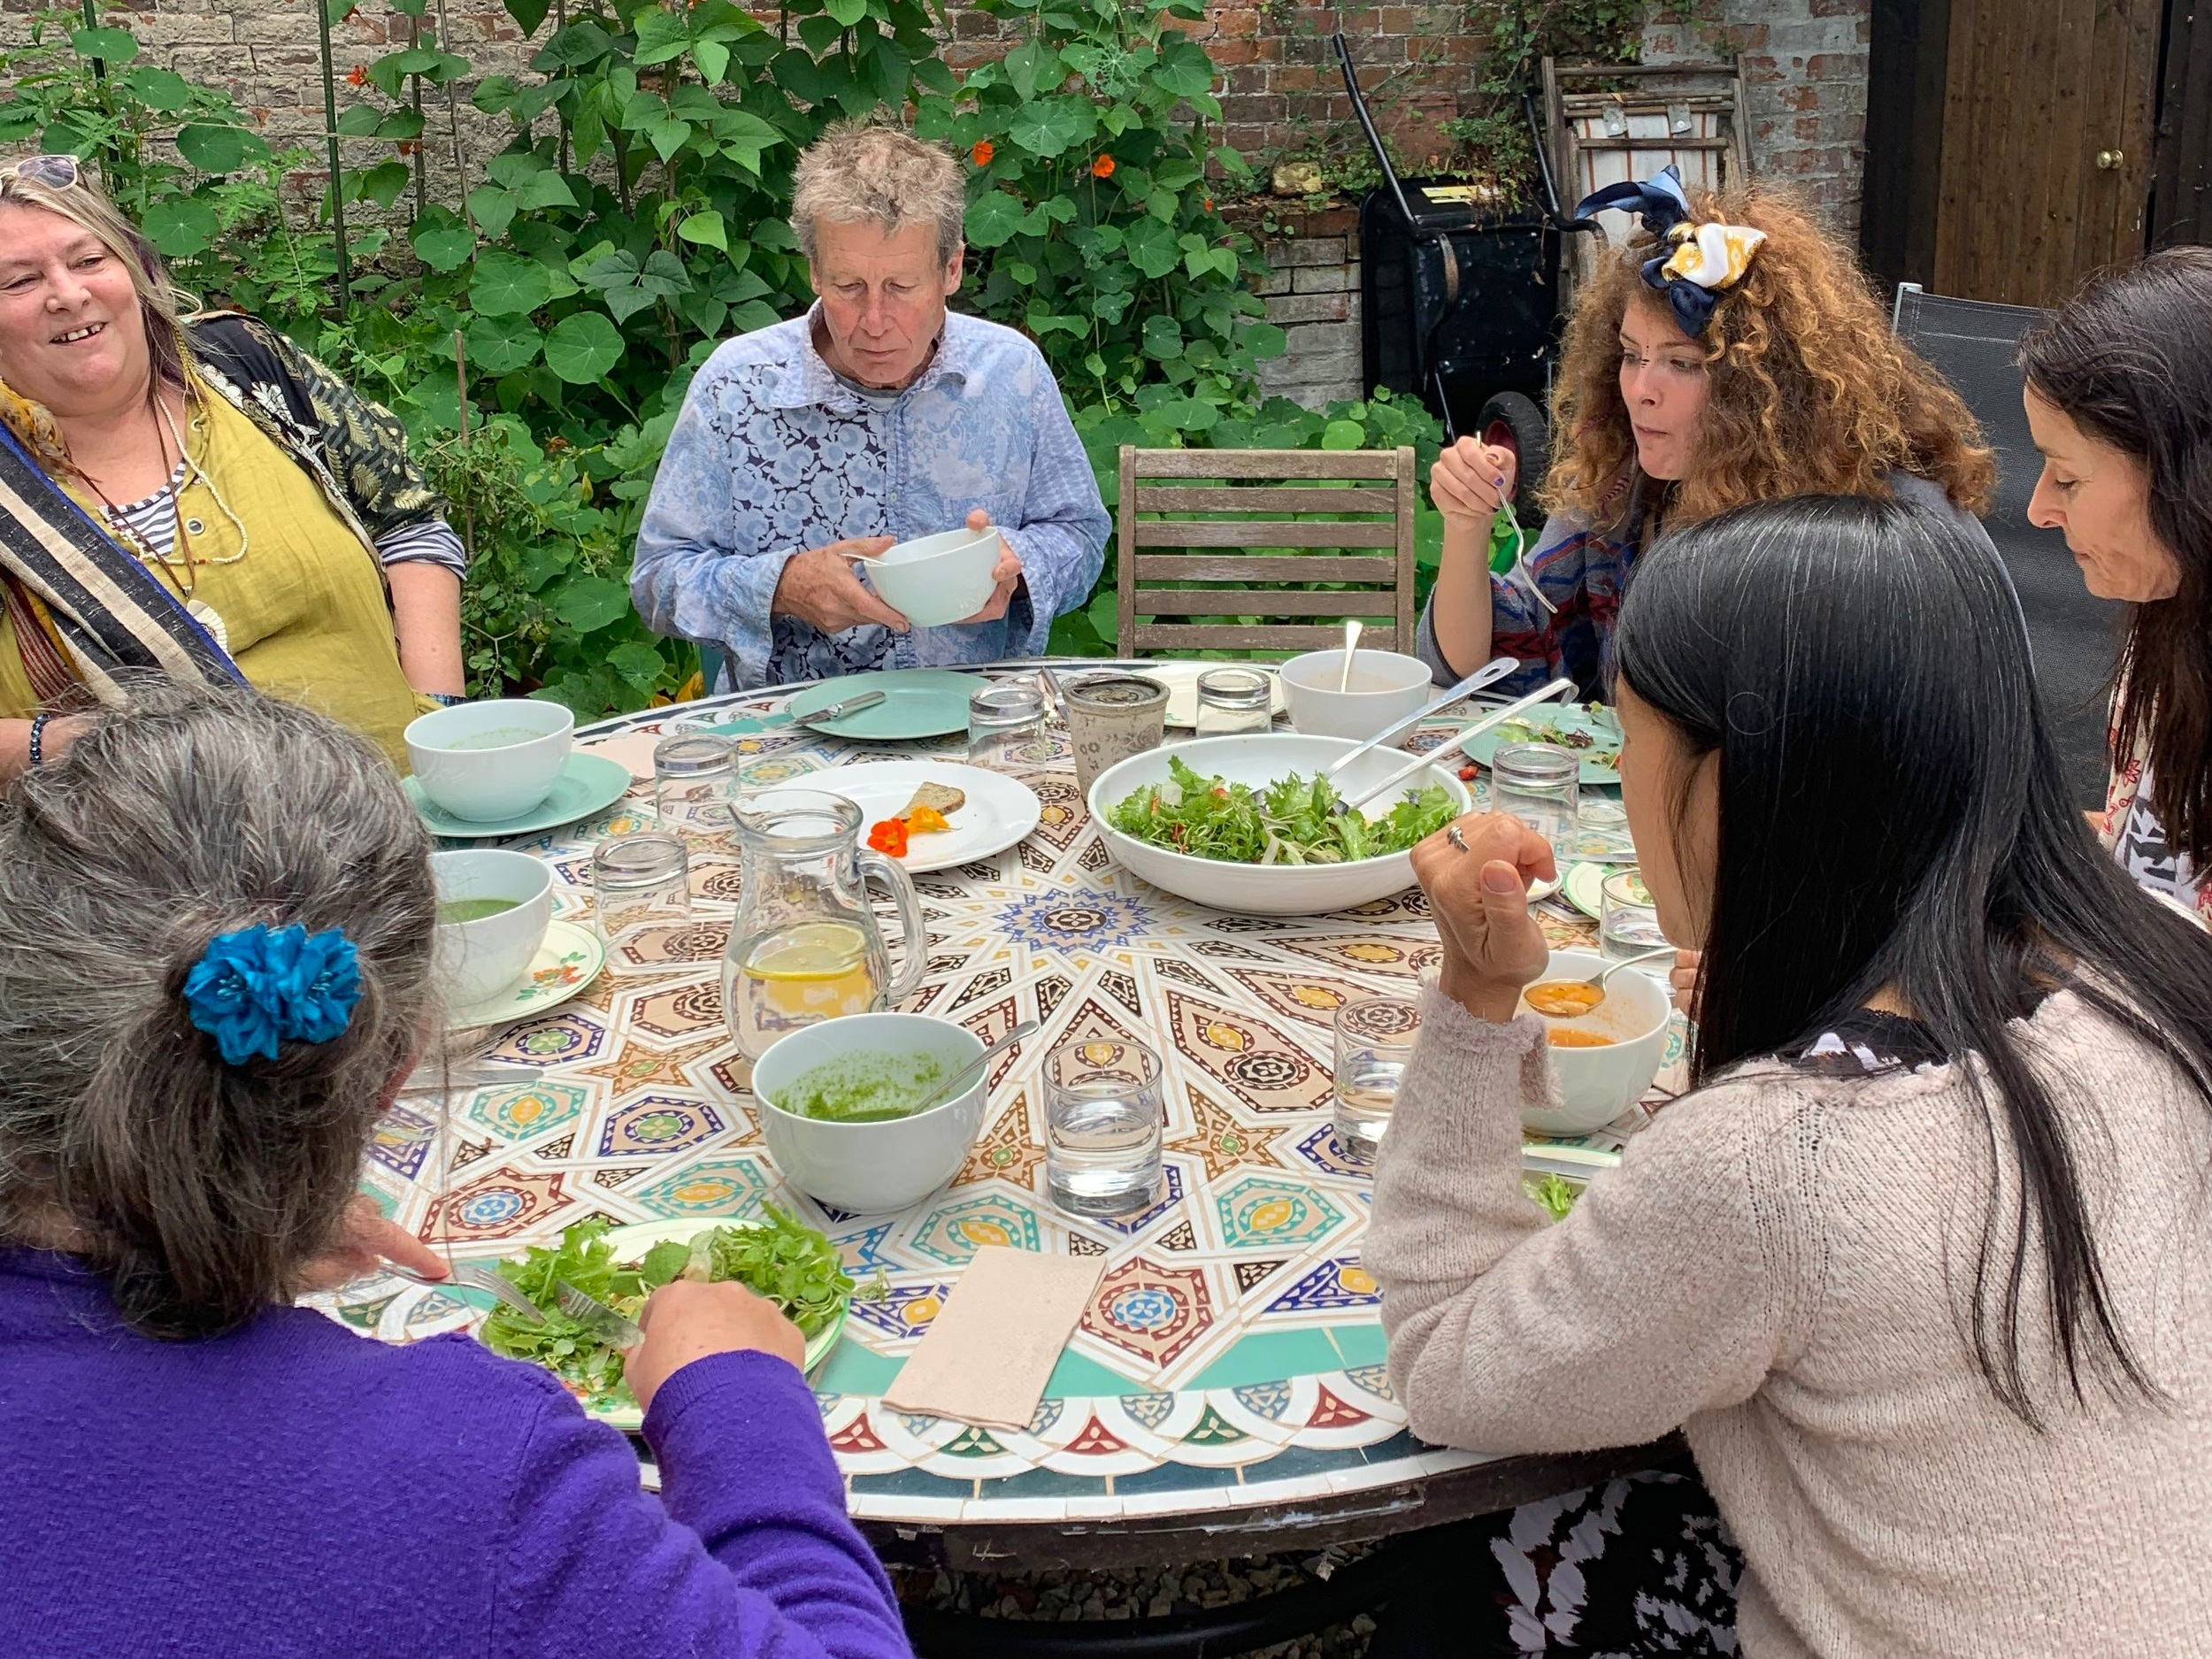 Some of our guest enjoying a healthy lunch during the Workshop.